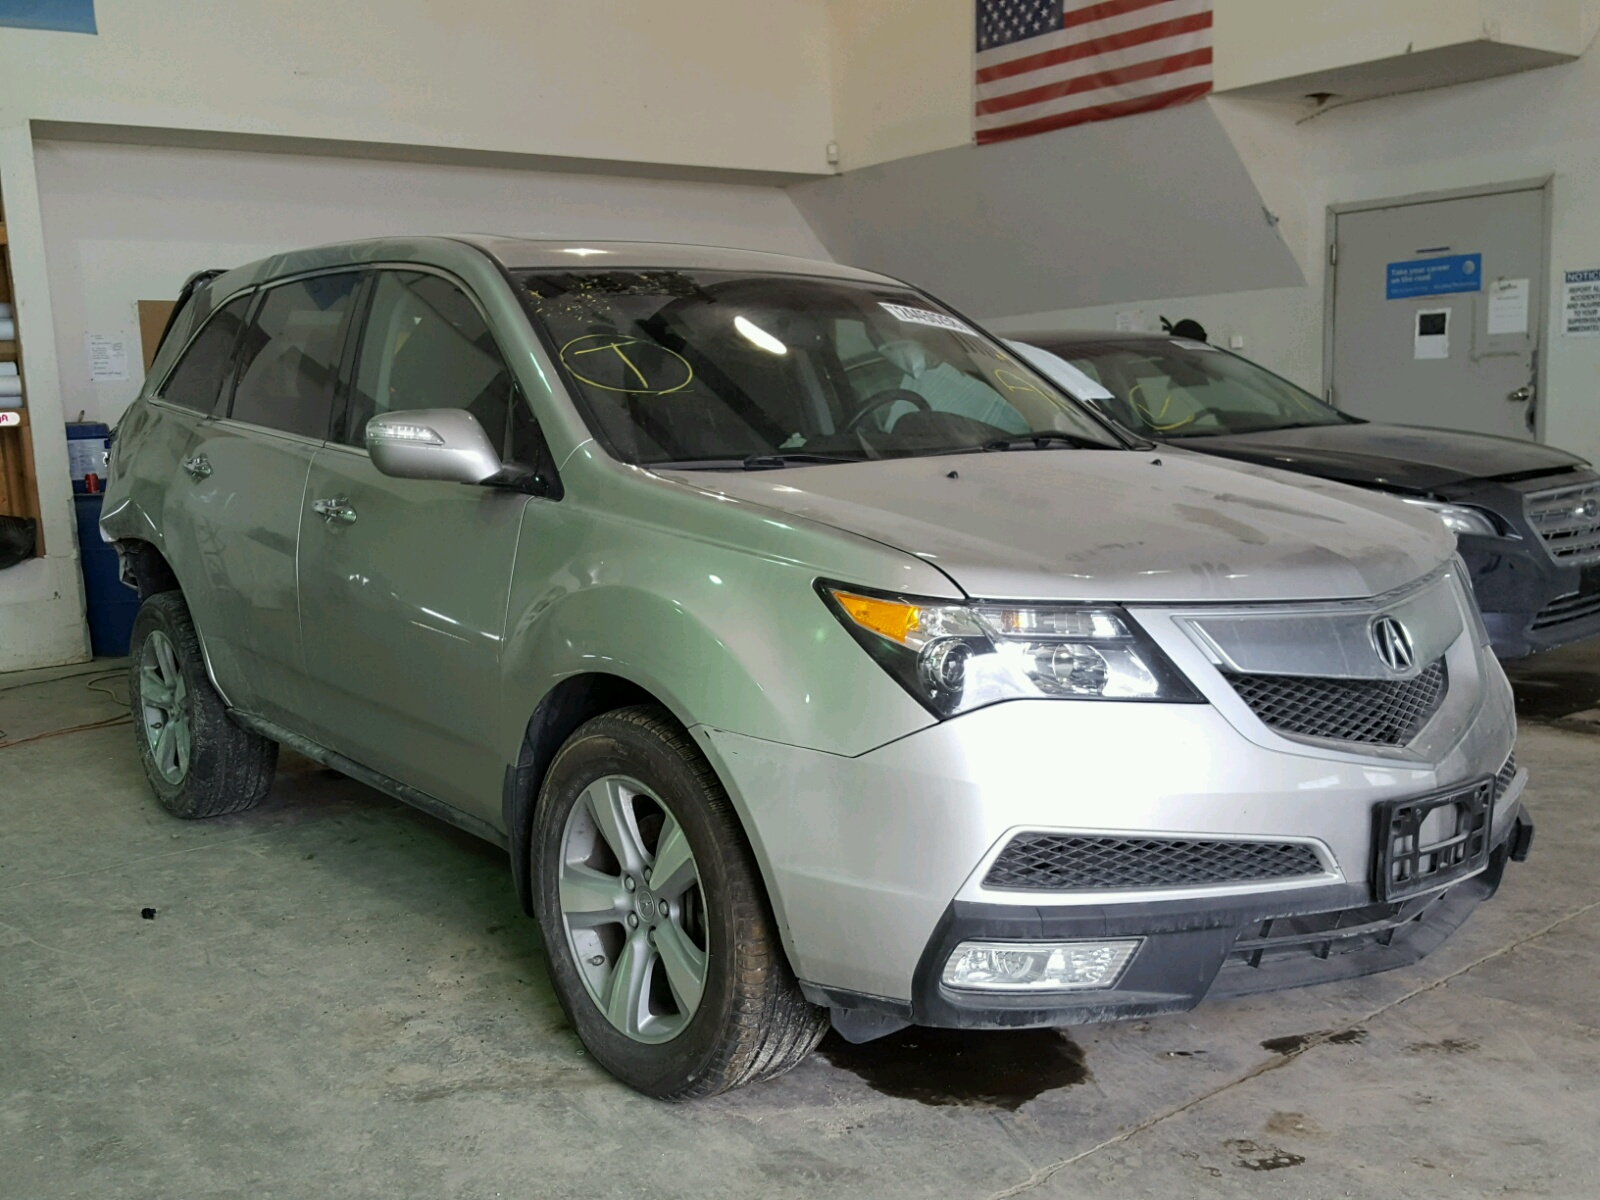 lot carfinder online mdx en black view auto acura salvage certificate copart auctions sale on martinez left for ca in